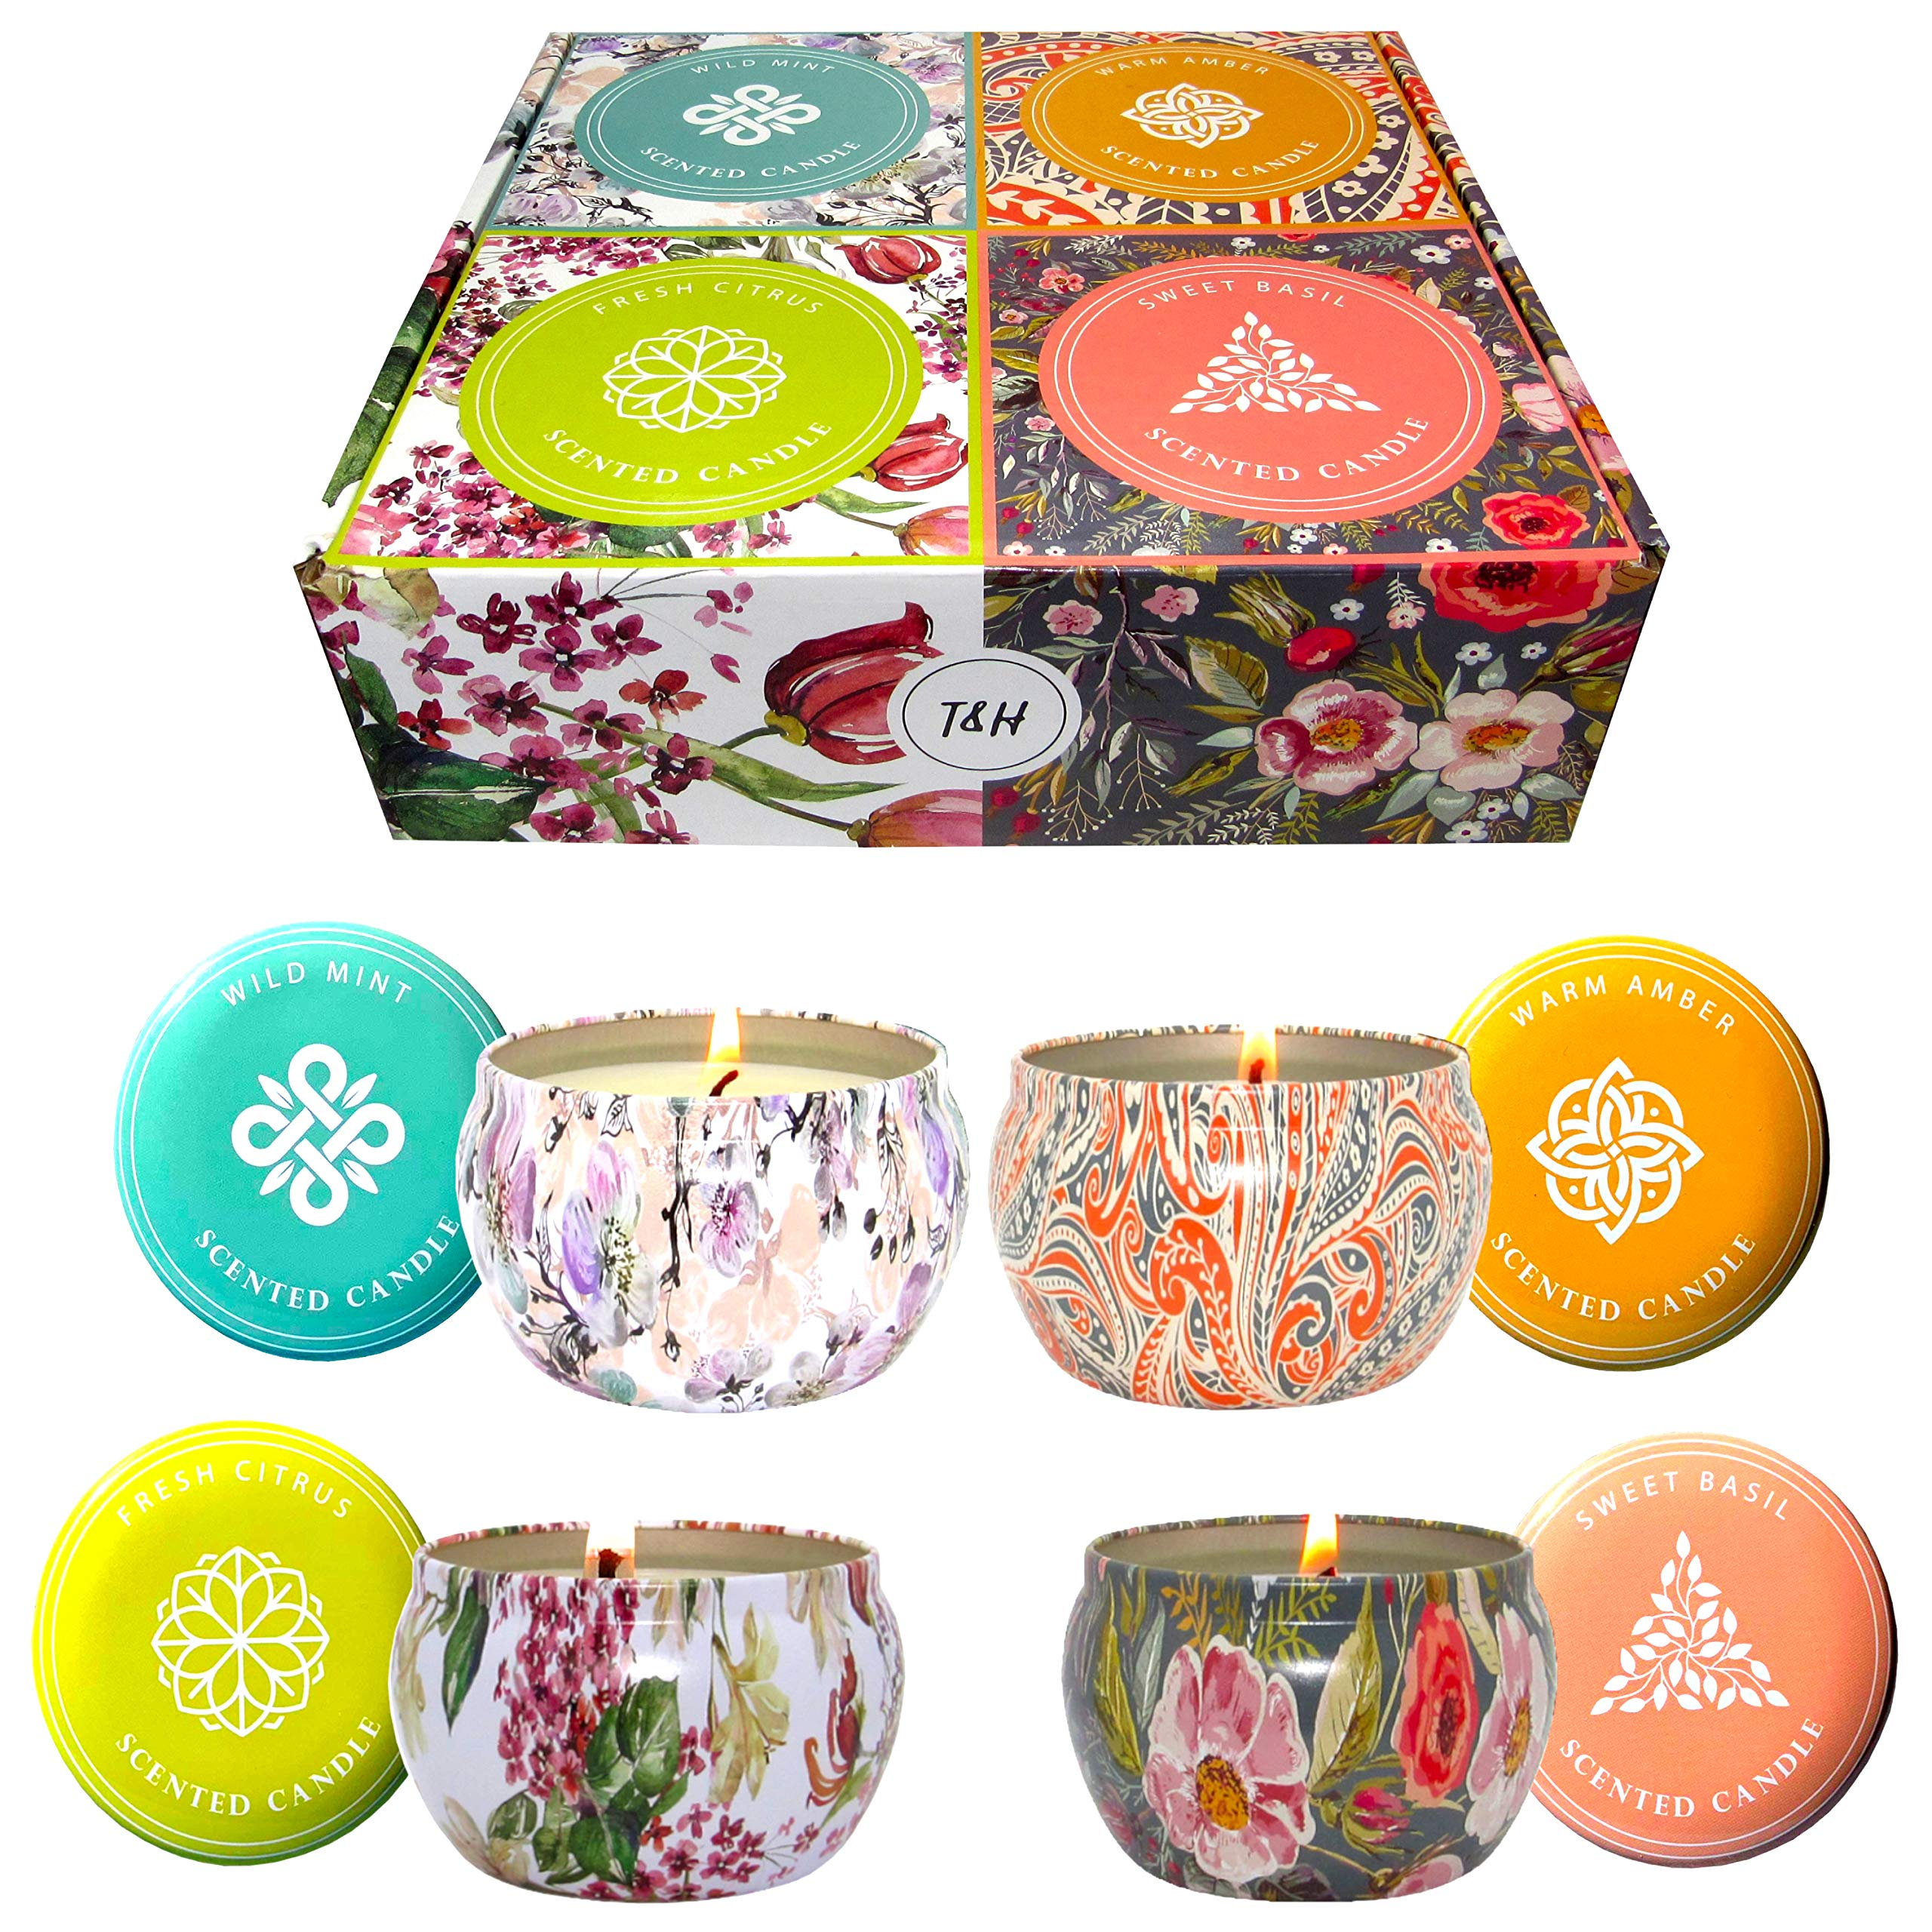 Big Aromatherapy Scented Candles Essential Oils Natural Soy Wax Portable Travel Tin Candle Set of 4 Gift Huge 6 Ounce tins 140 Hour Burn Long Lasting Fresh Citrus, Warm Amber, Wild Mint, Sweet Basil by T&H